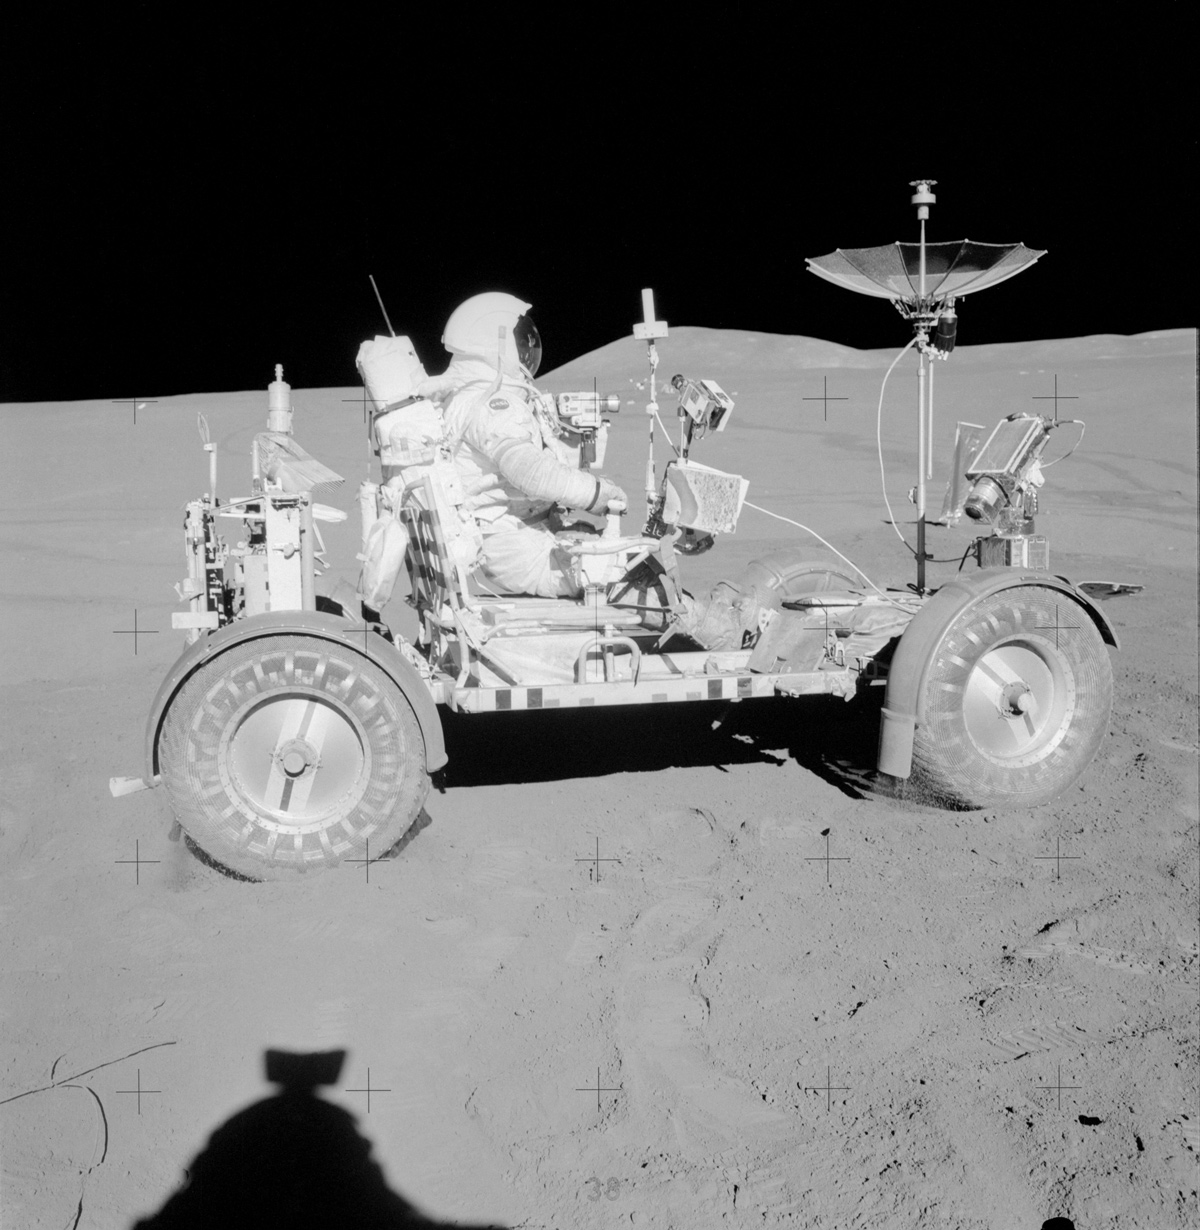 Astronaut driving rover on the moon